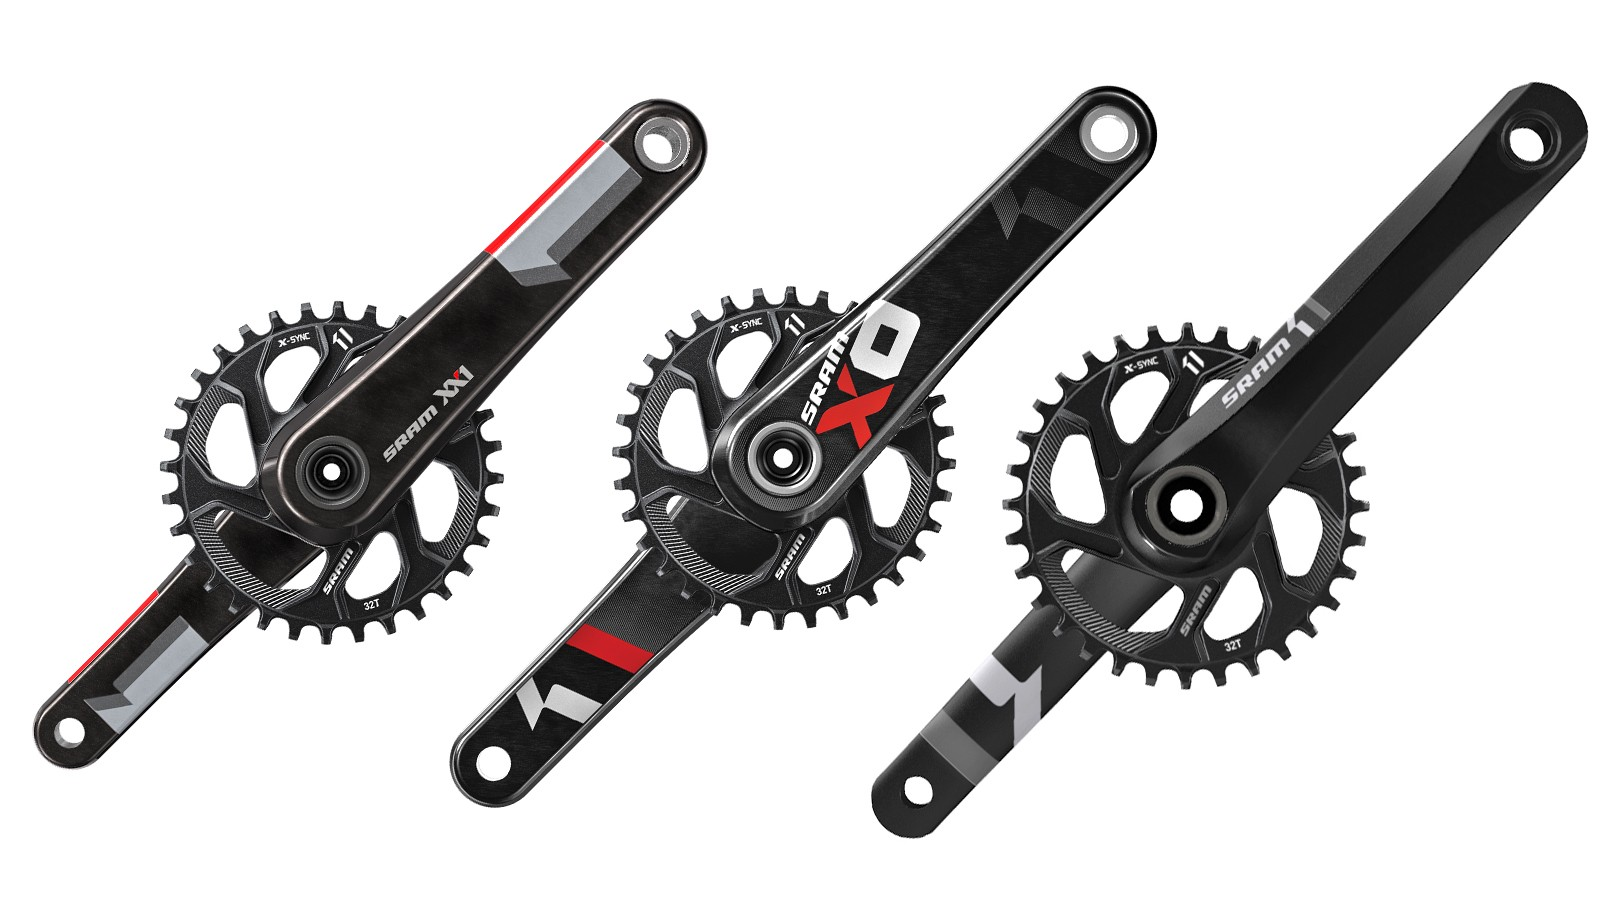 The new SRAM direct-mount X-SYNC chainrings are compatible with XX1, X01 and X1